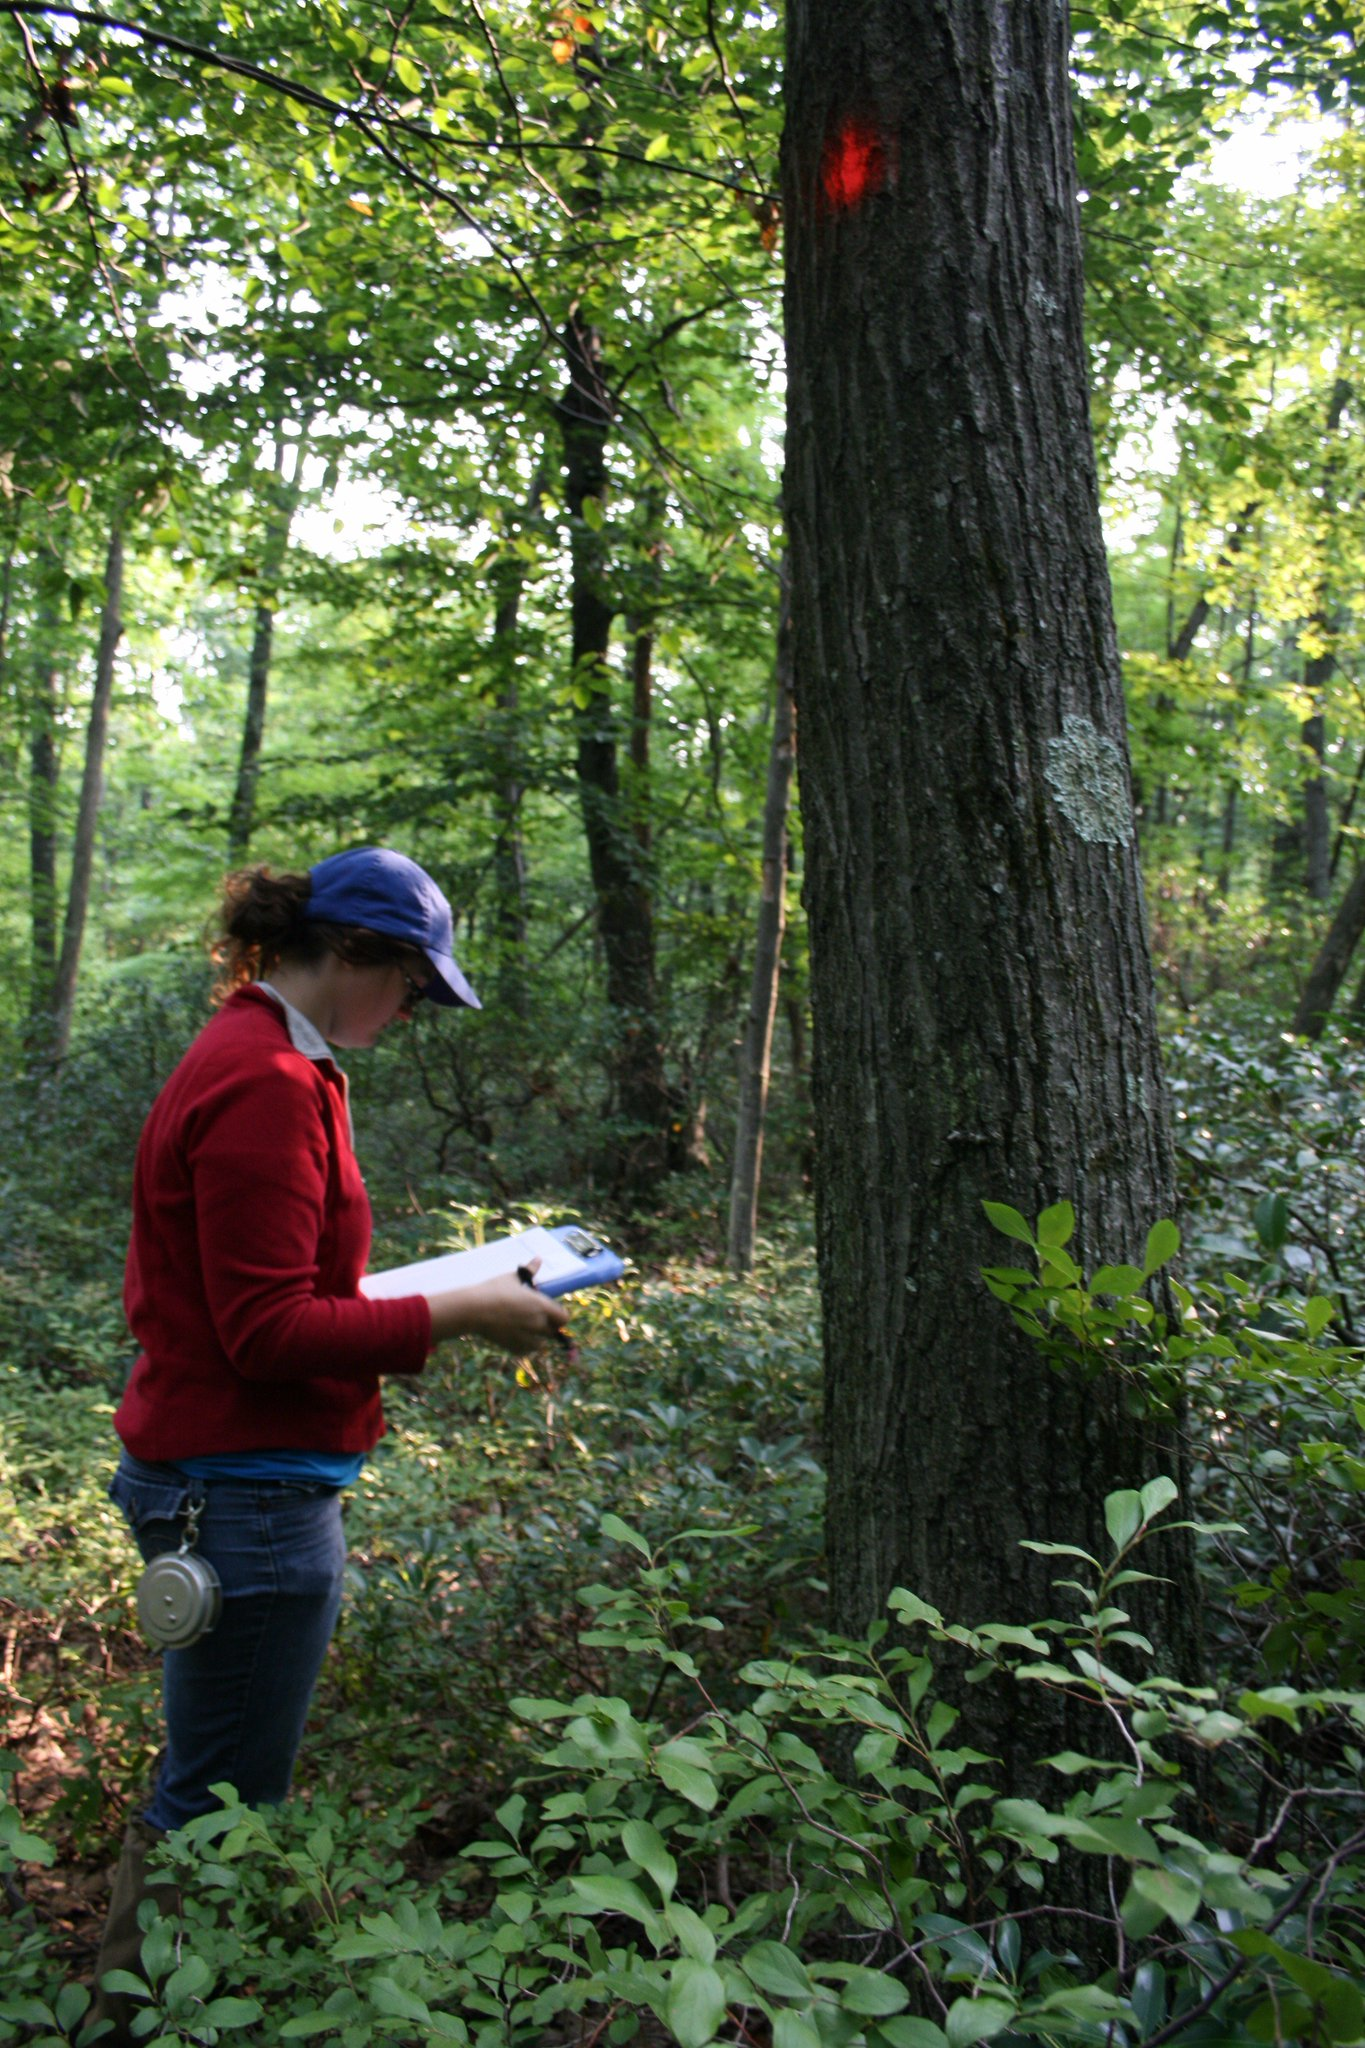 Hi, my name's Danielle and I study how forest understory plant communities respond to deer browsing and soil chem. #actuallivingscientist https://t.co/UQshZe0EZI